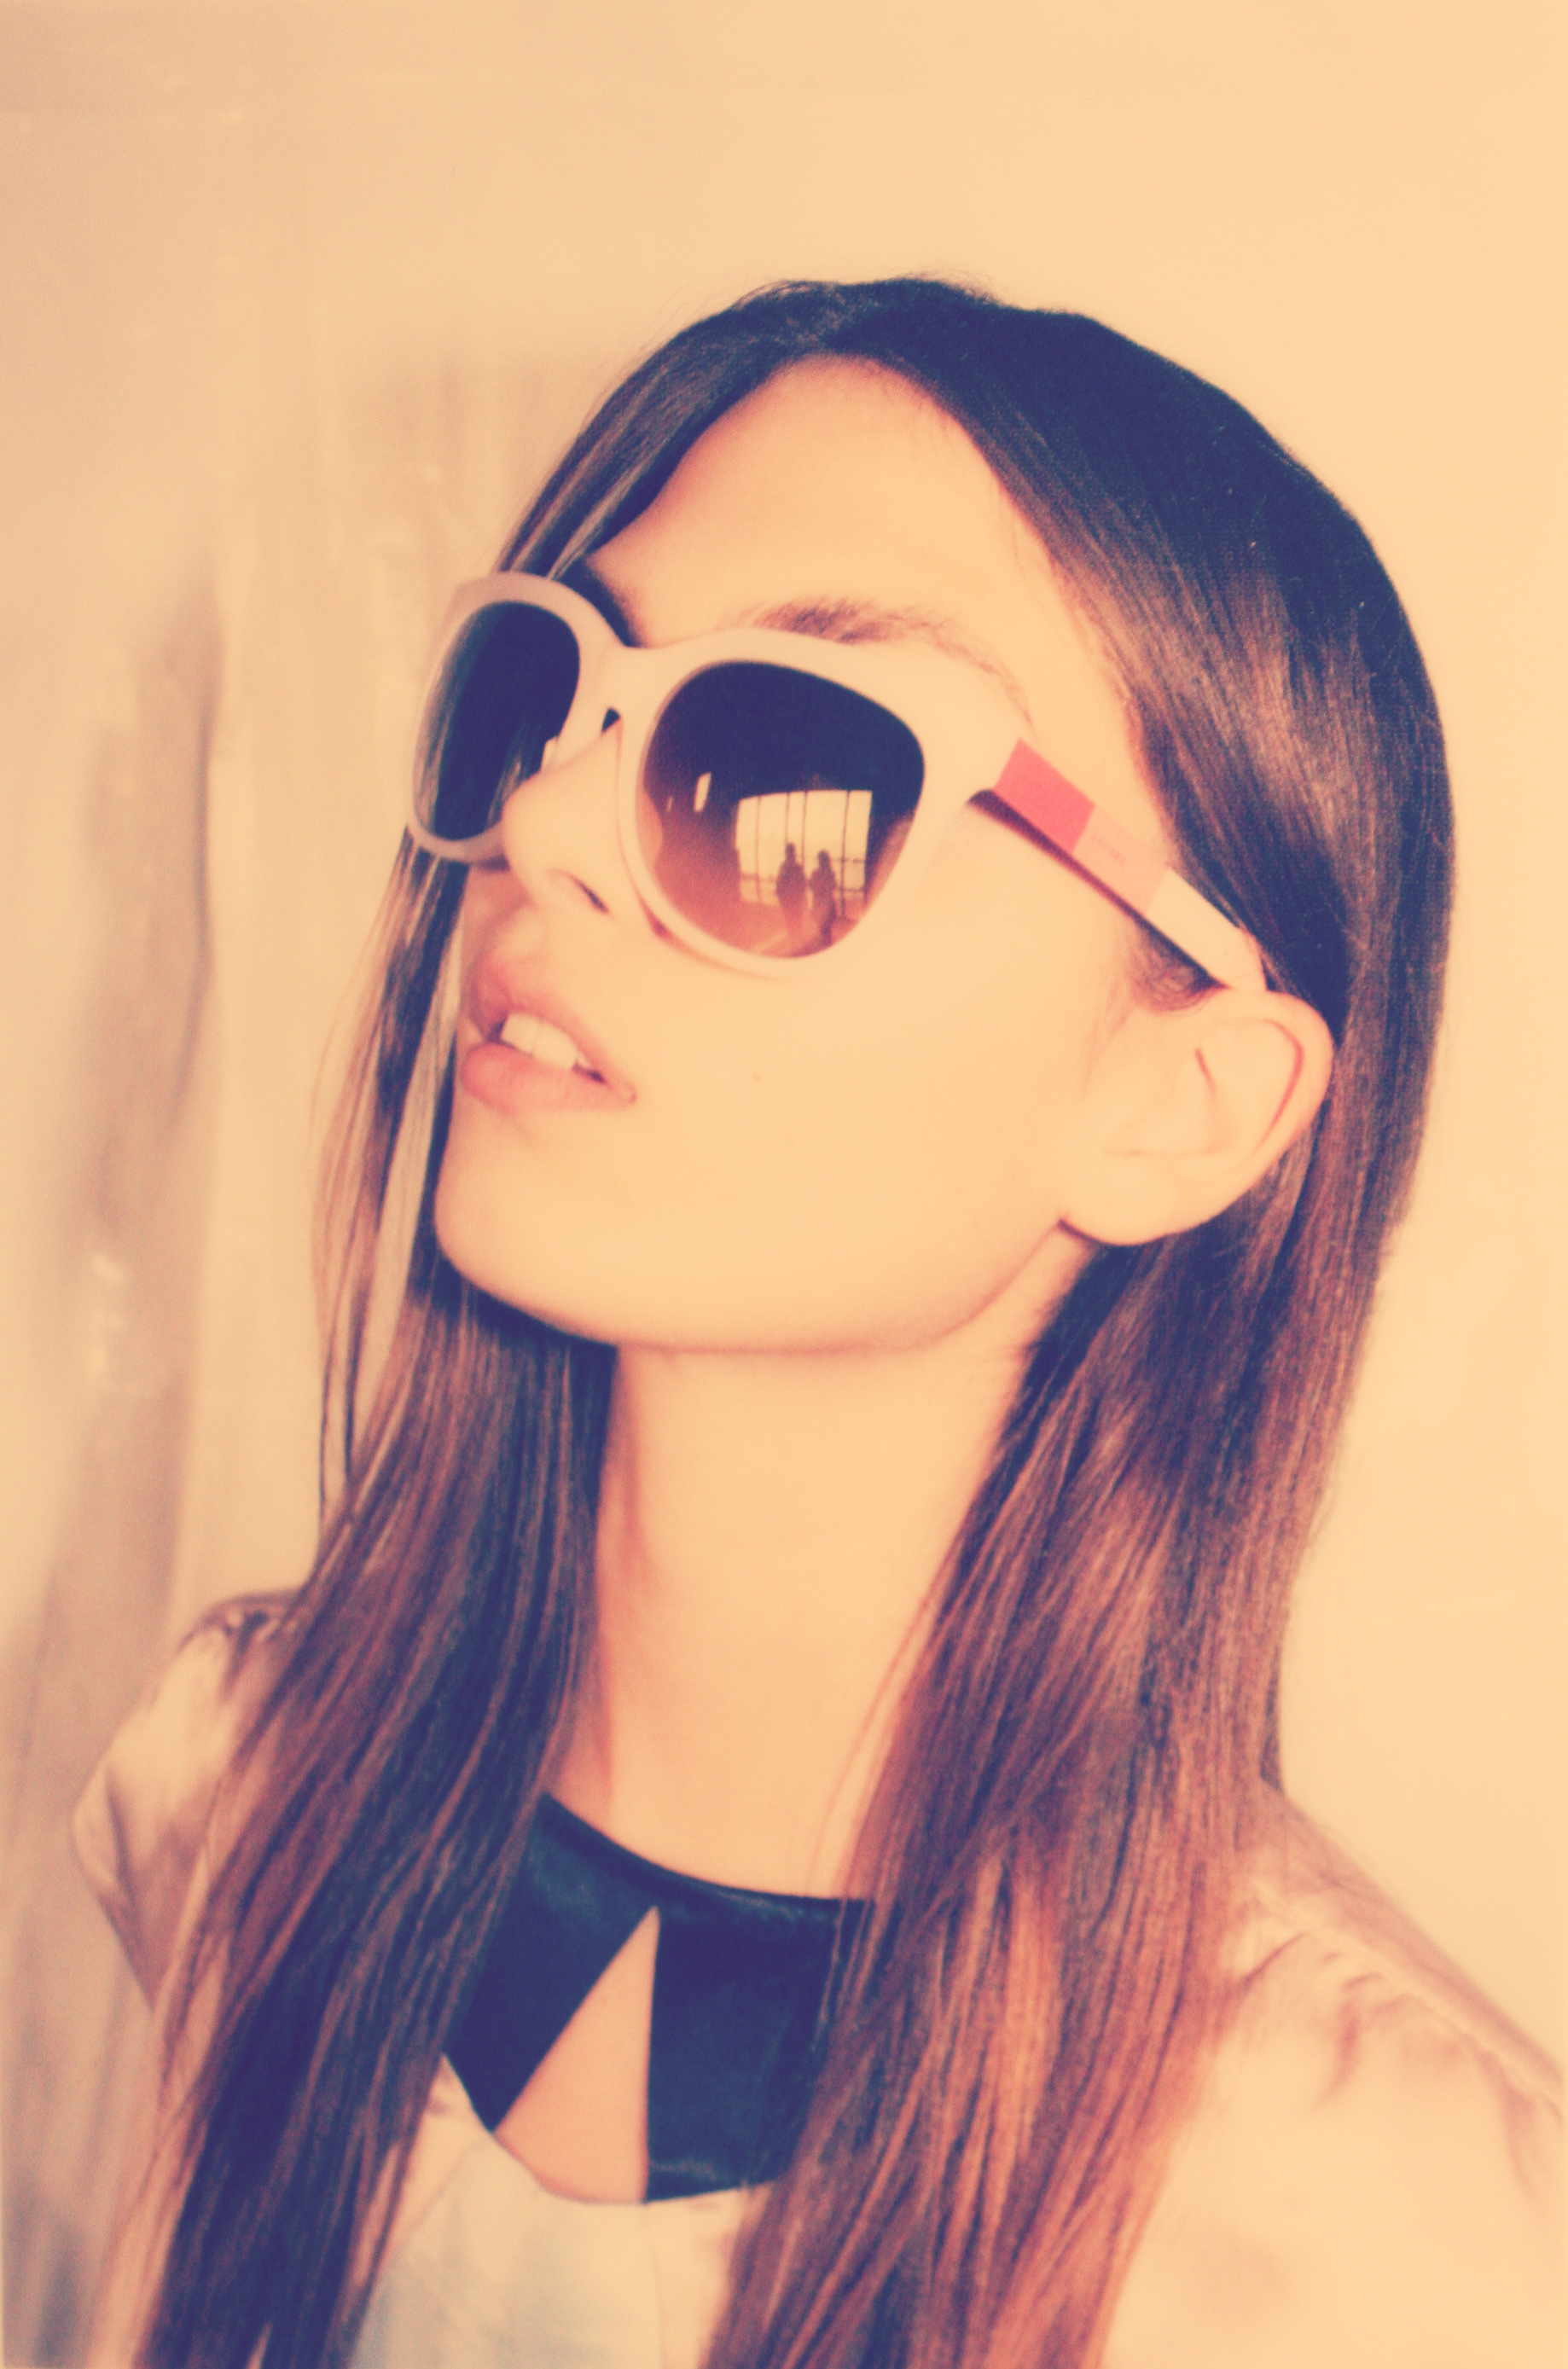 Girl Sunglasses.jpg